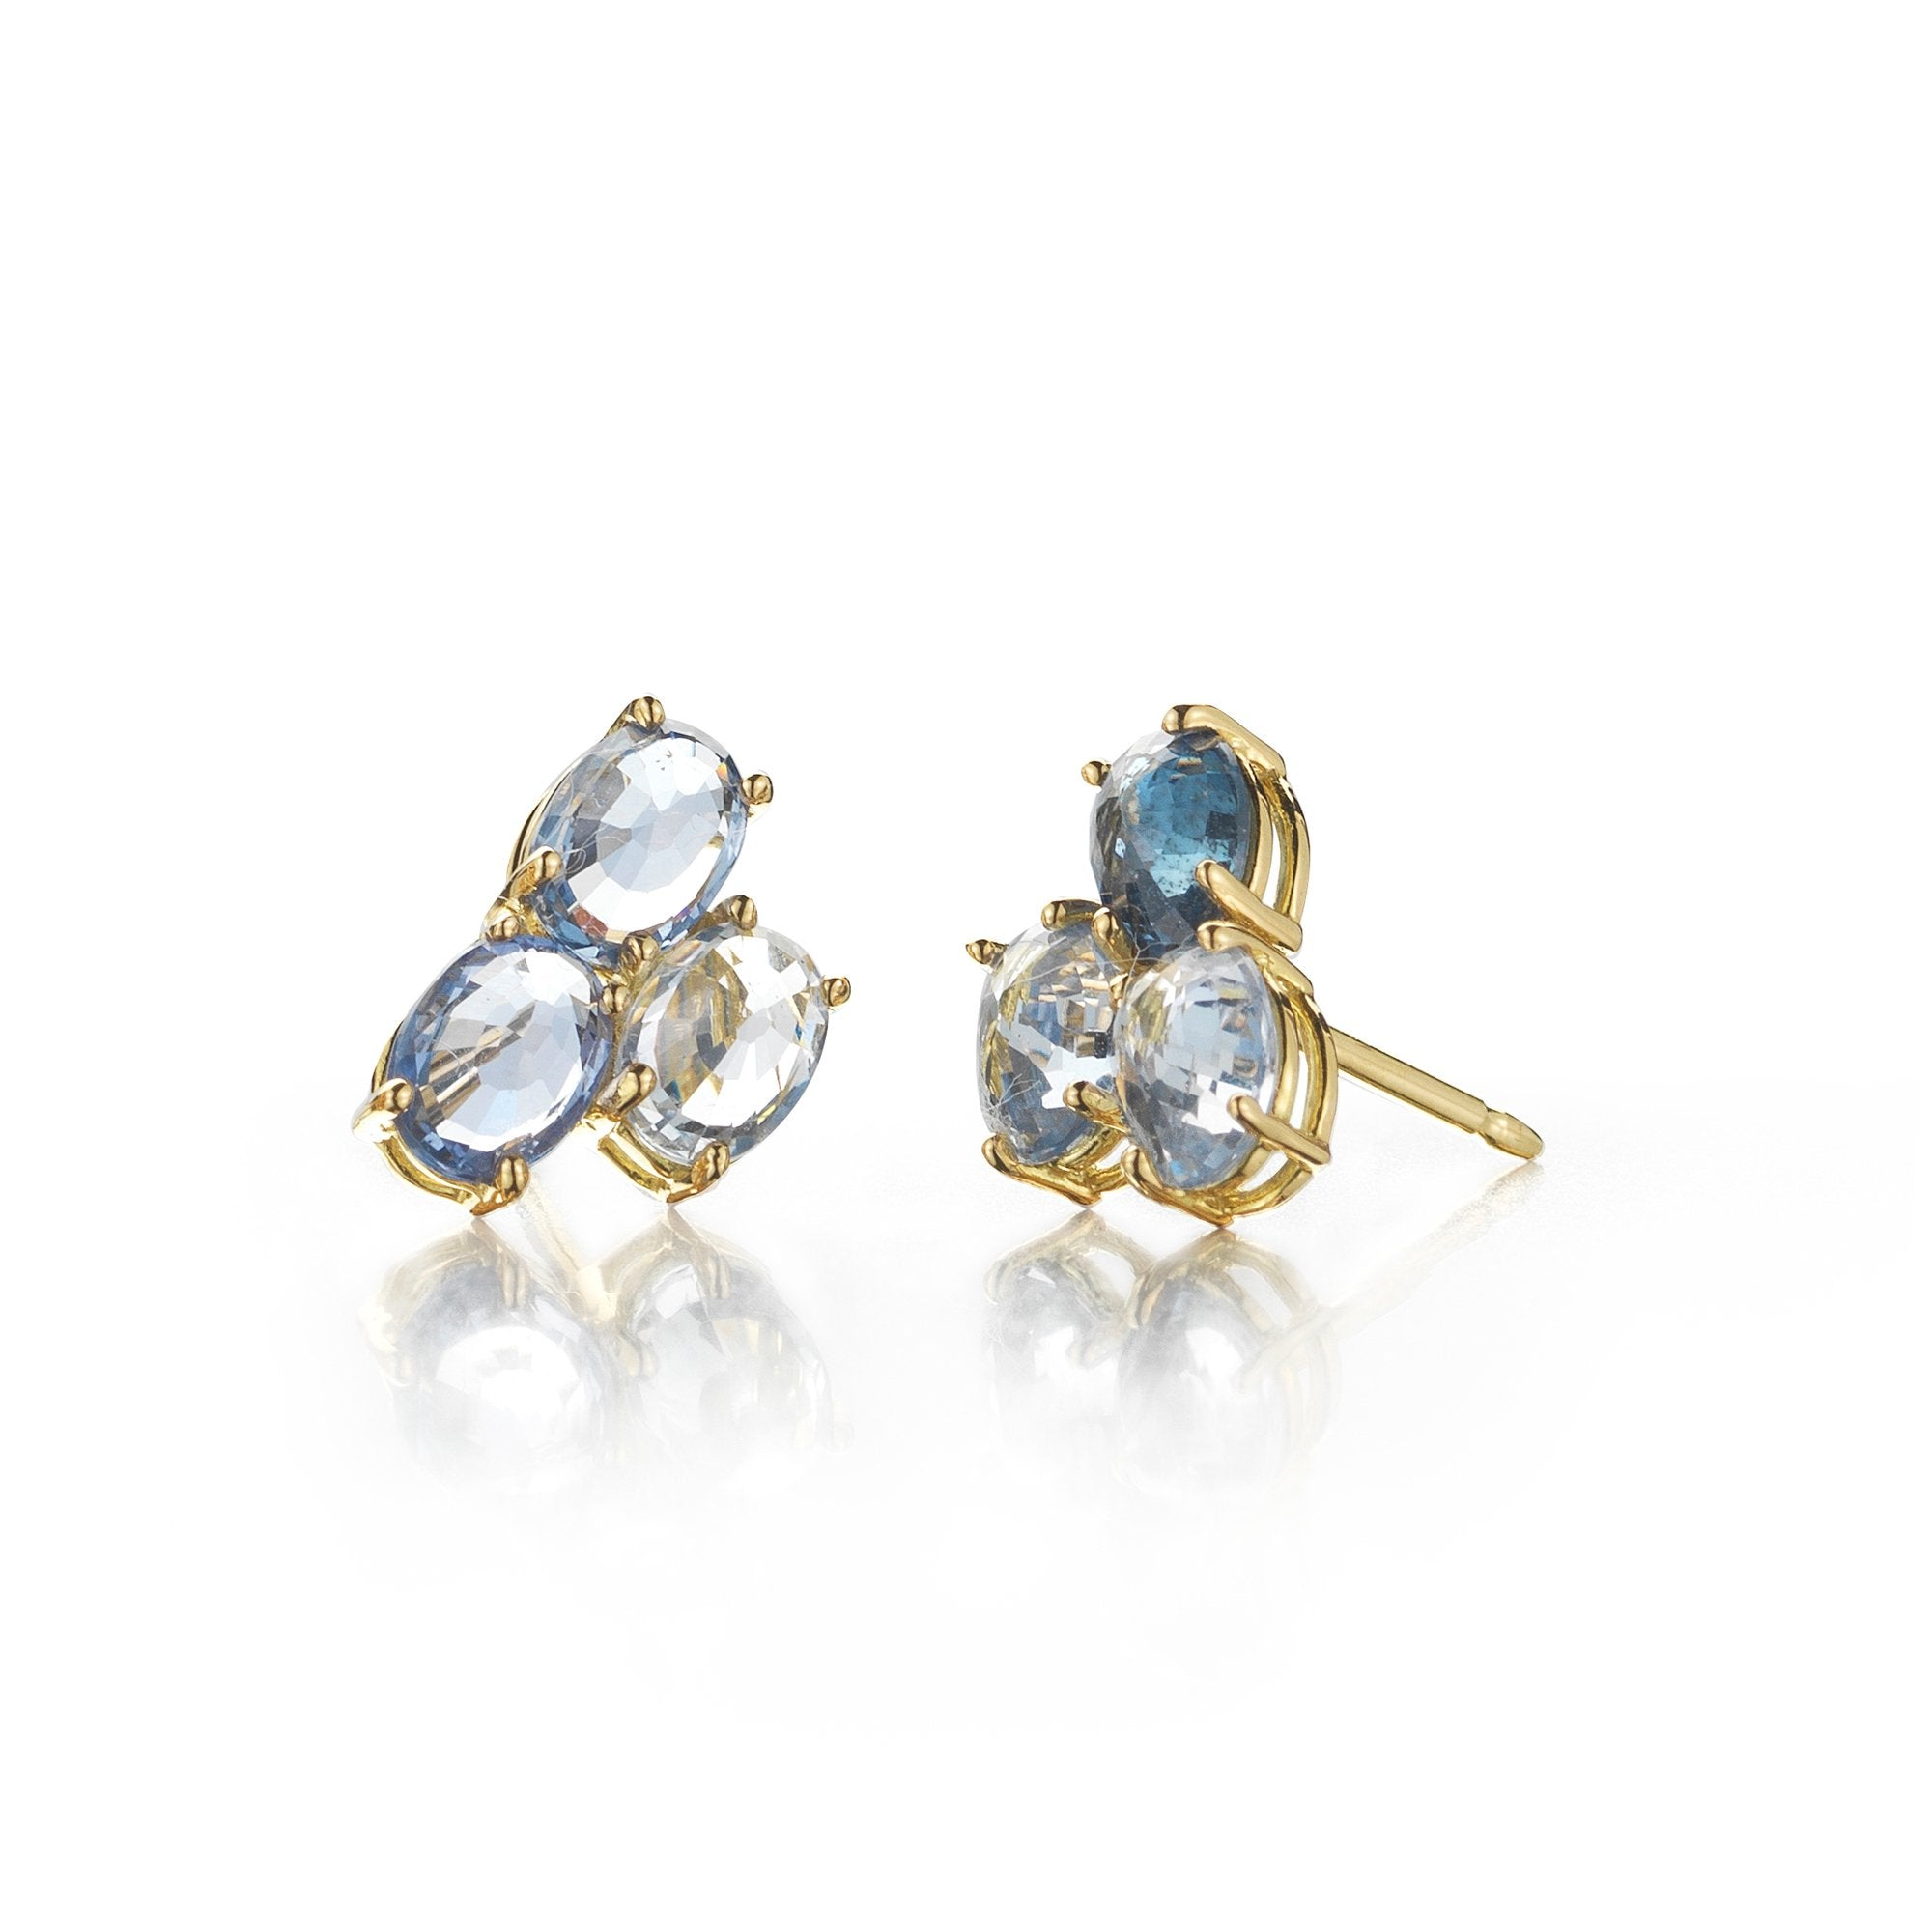 Blue Sapphire 'Ombre' Trillion Stud Earrings - Paolo Costagli - 1